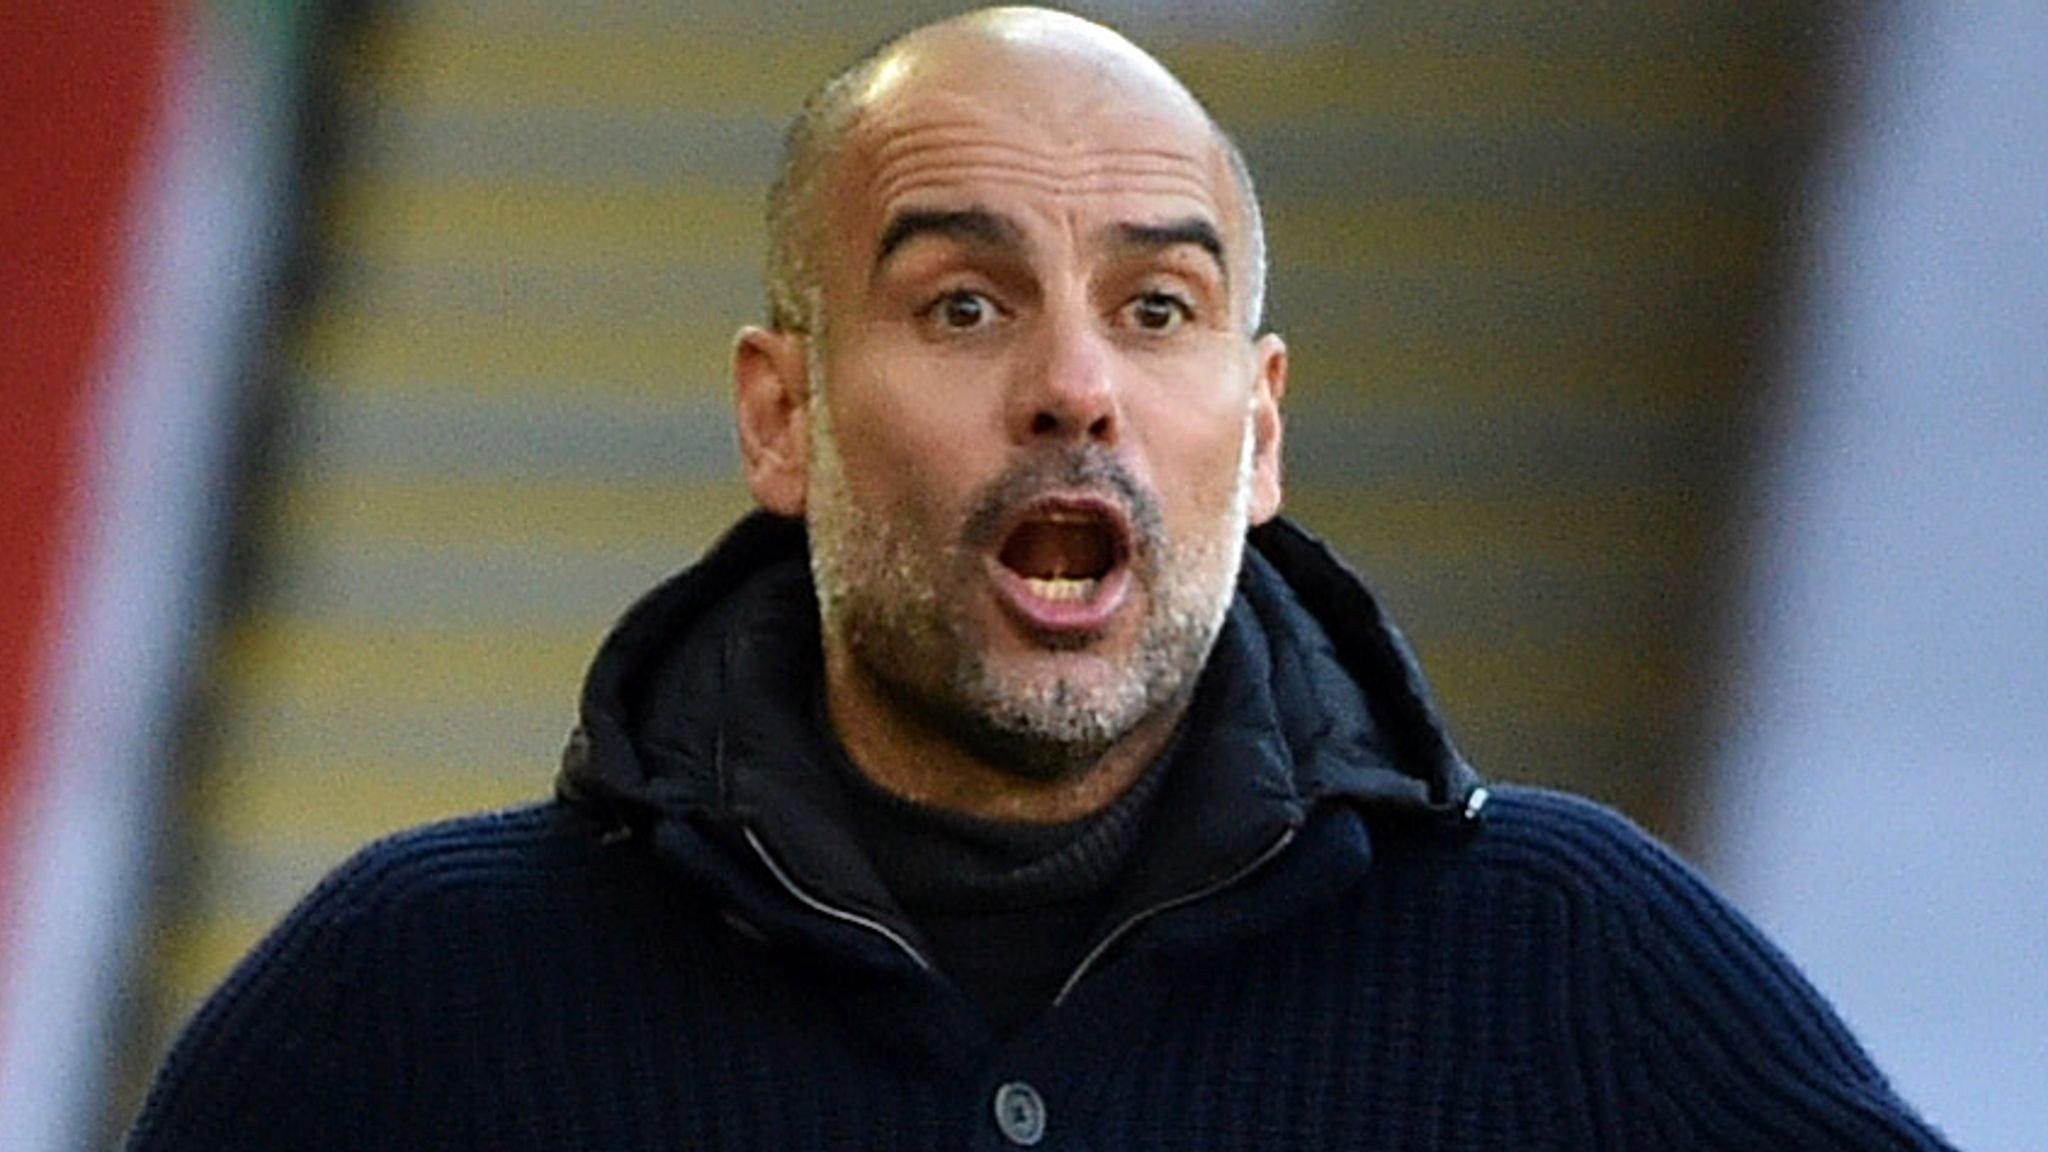 'MY CAREER AS BARCA MANAGER IS OVER': PEP GUARDIOLA RULES OUT CAMP NOU RETURN - Bóng Đá